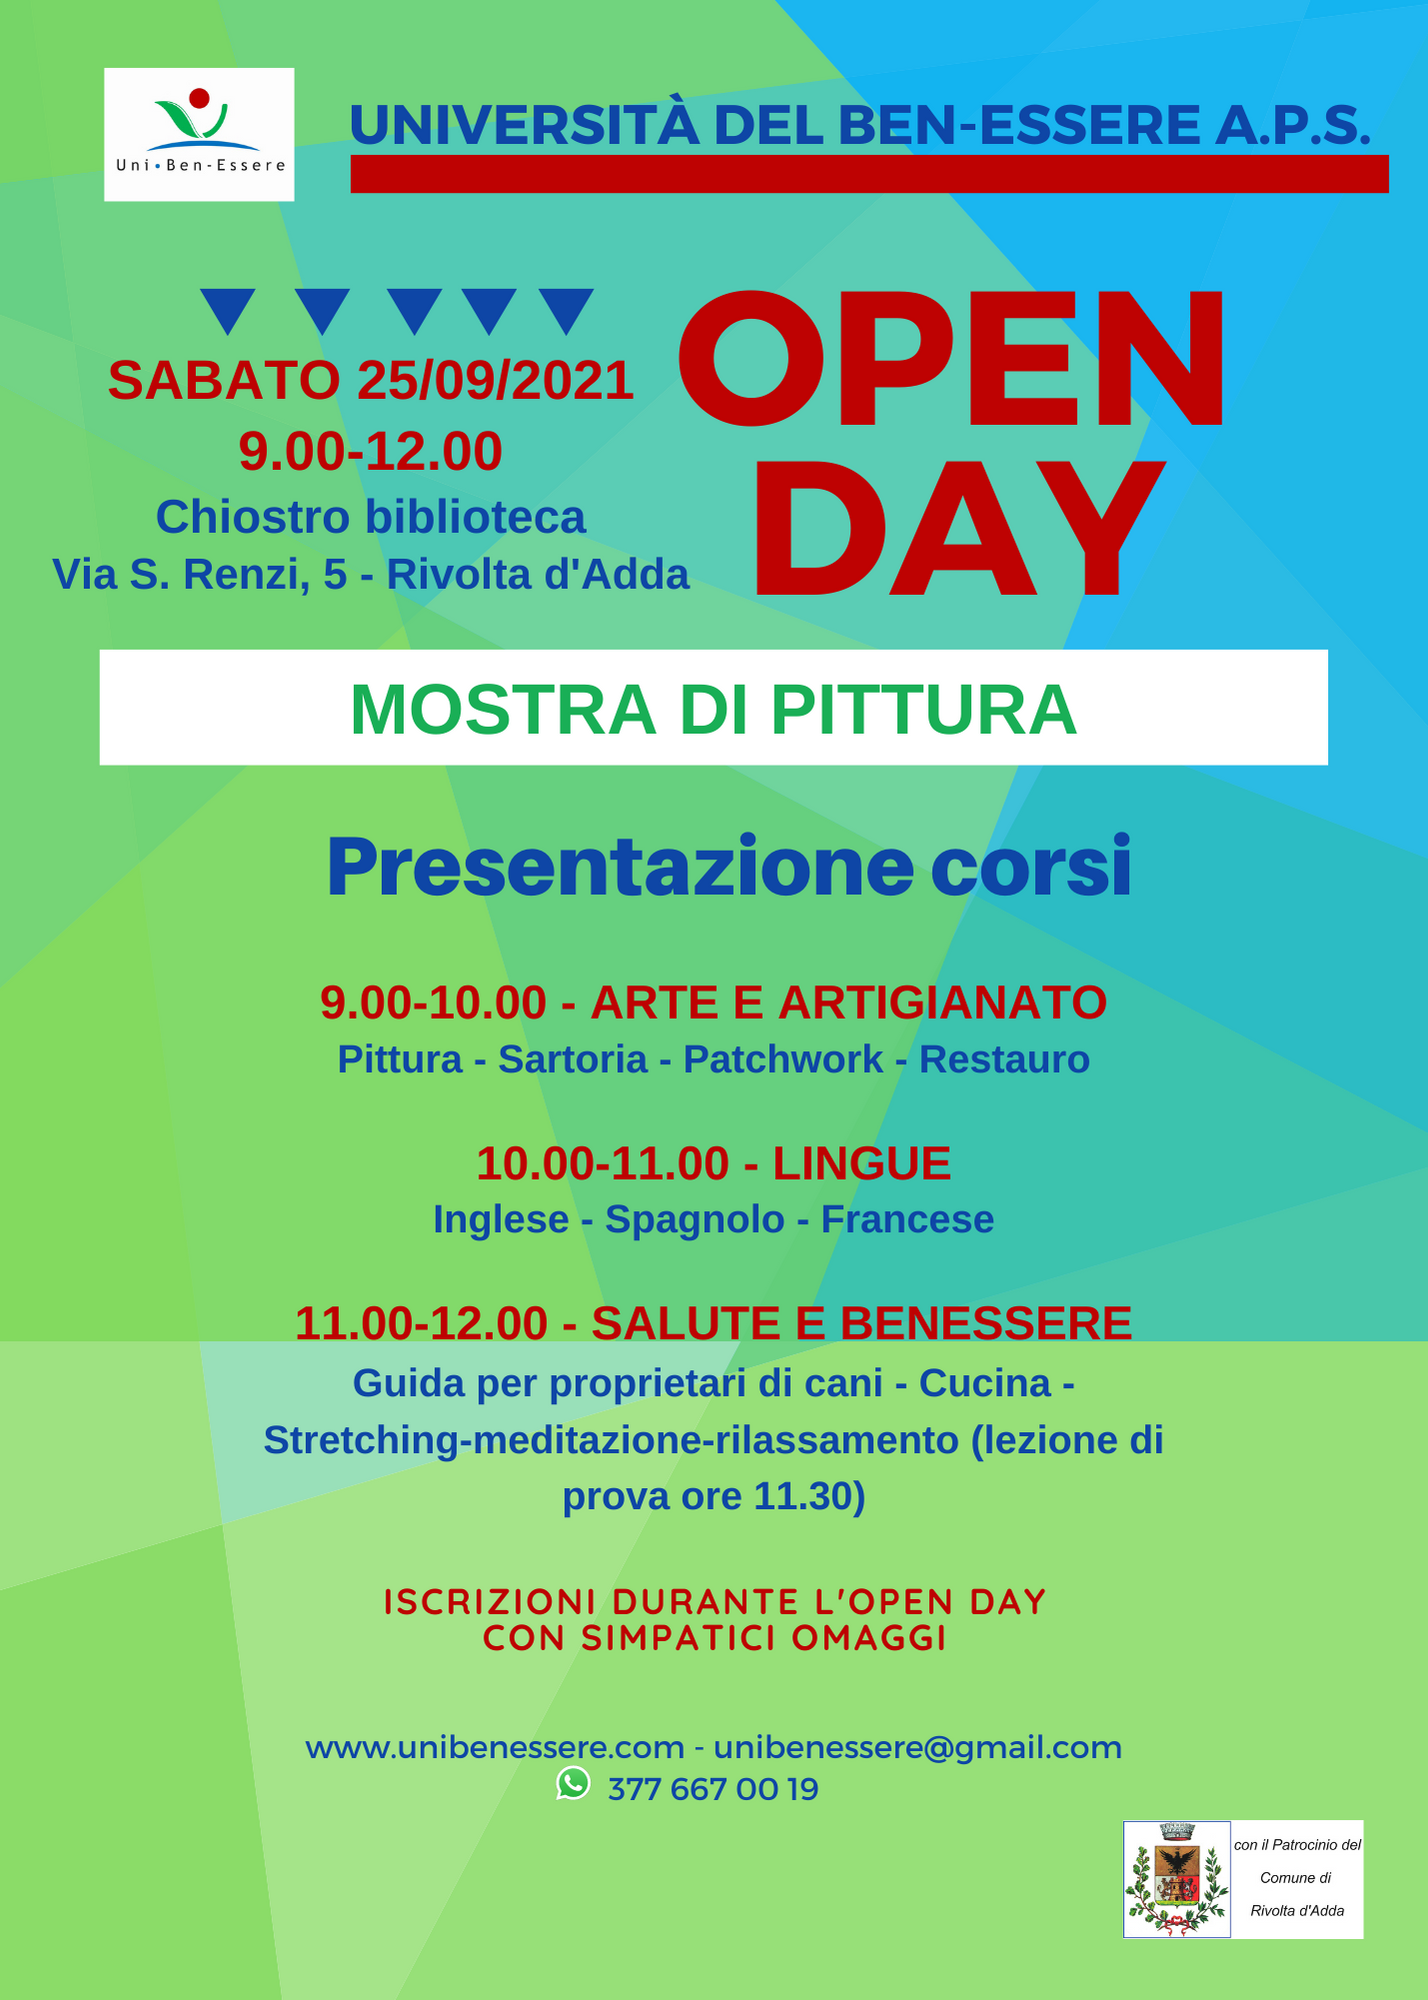 OpenDay2021-2022